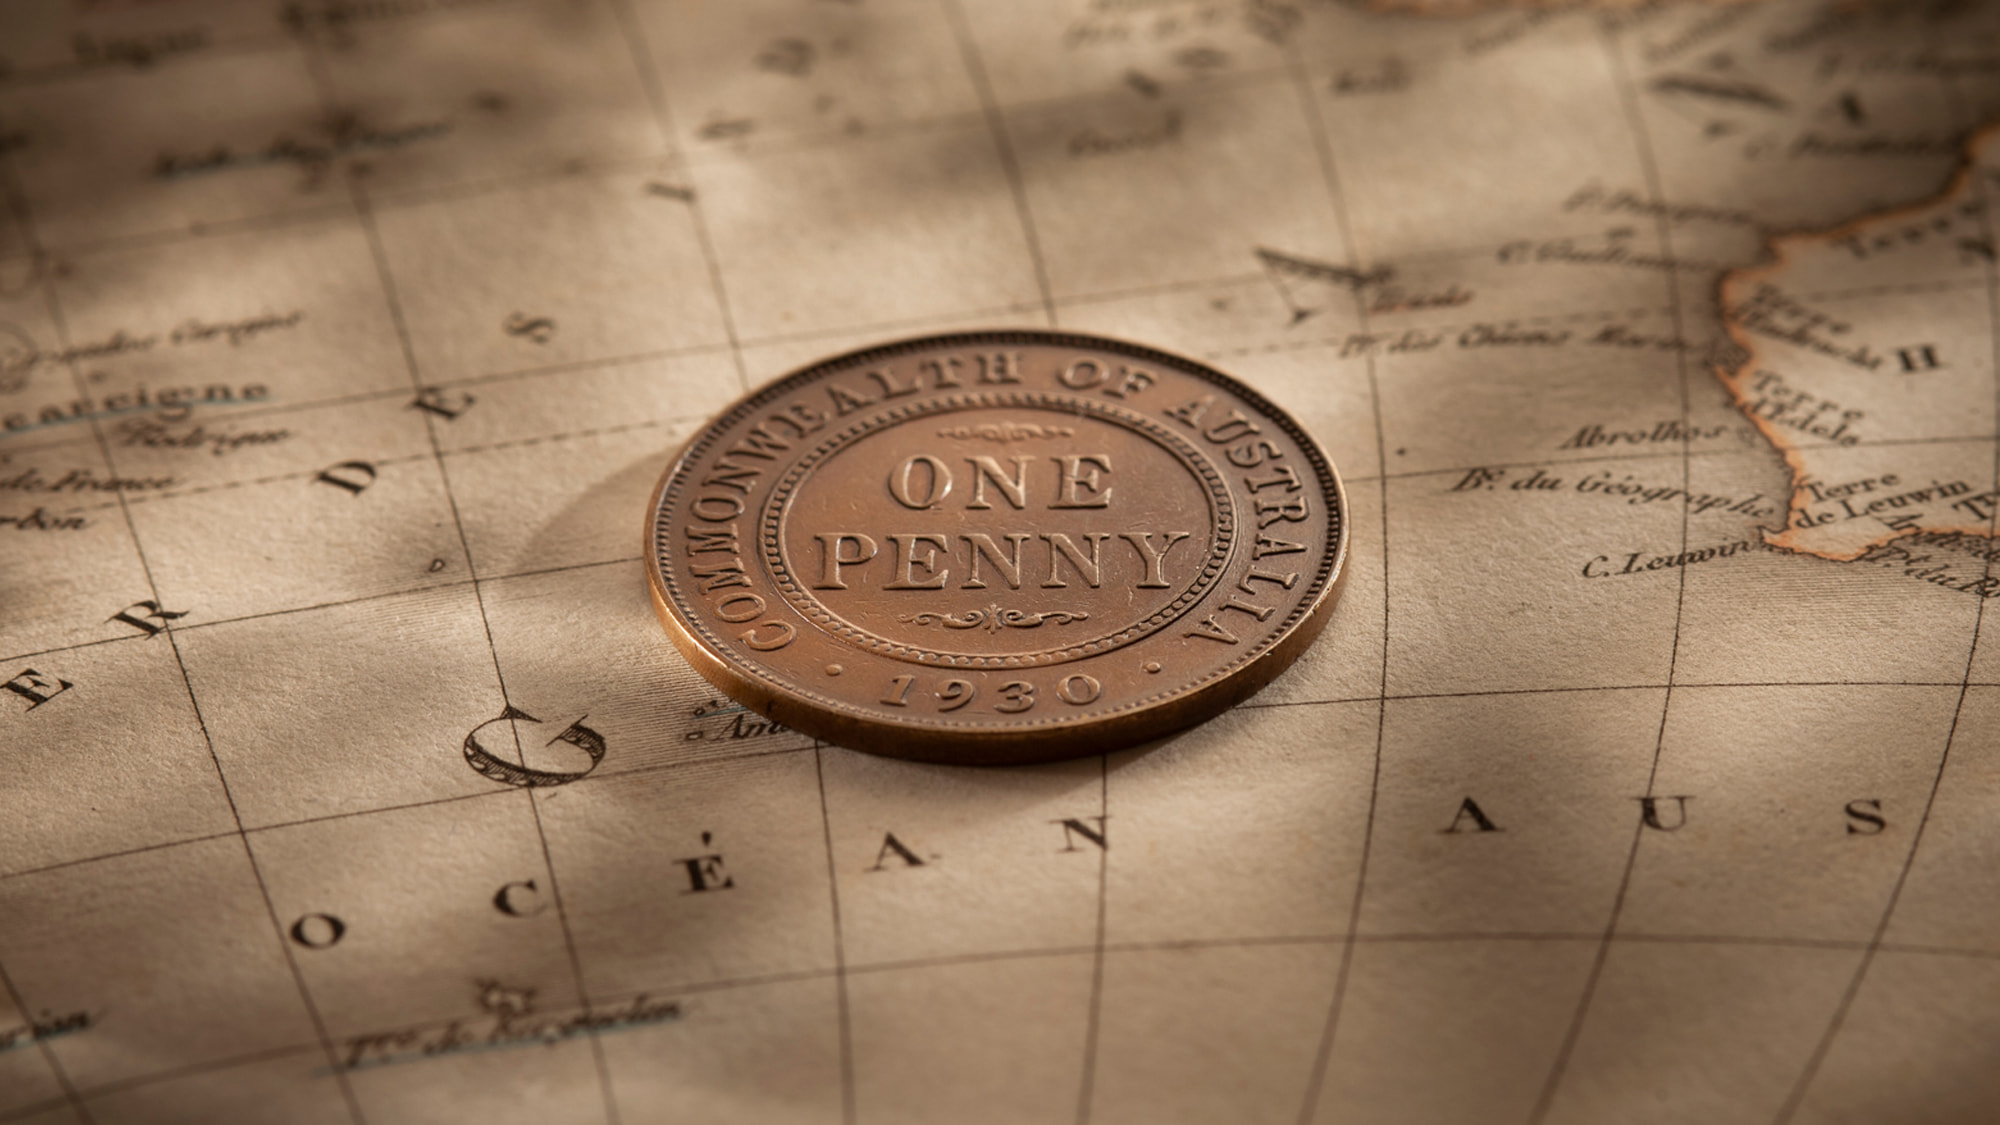 1930-Penny-Fine-plus-Very-Fine-Rev-1-October-2020